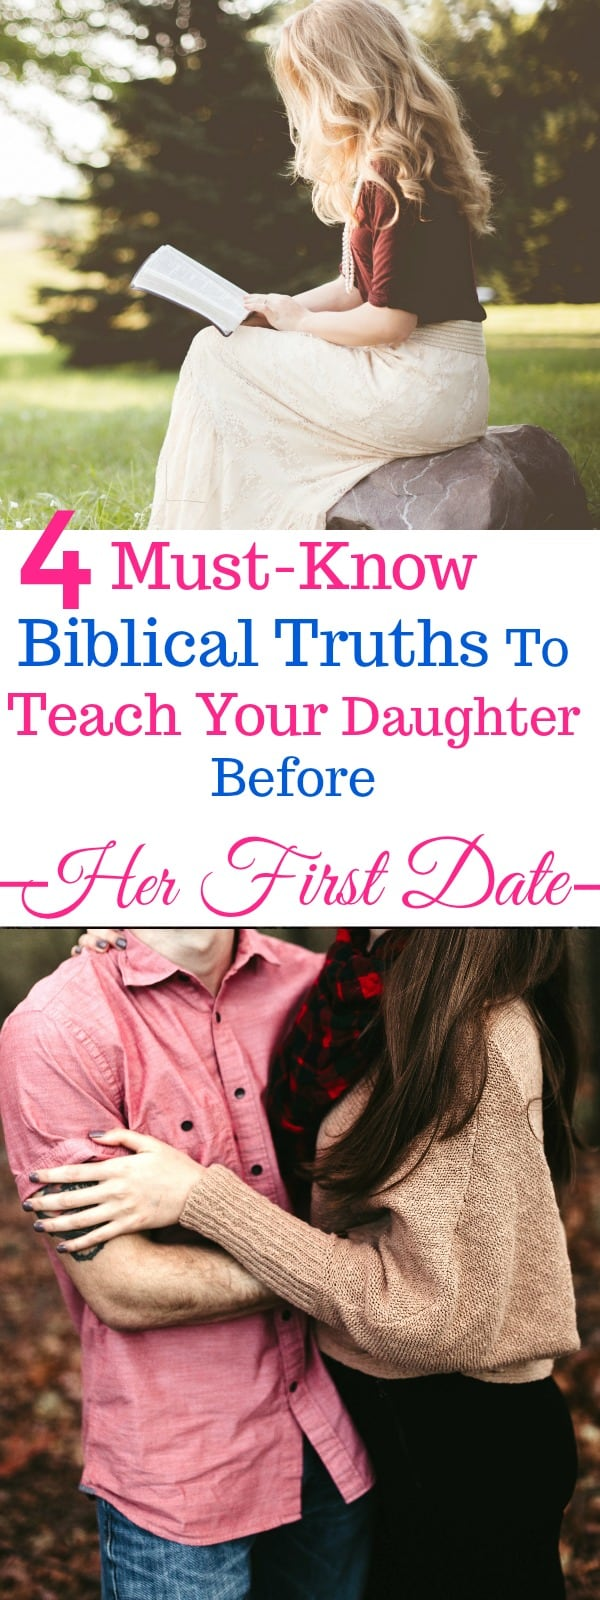 Totally LOVED these 4 Biblical truths to teach my daughter before her first date EVER! This is a must-know! Wow. I'm SO glad I found this